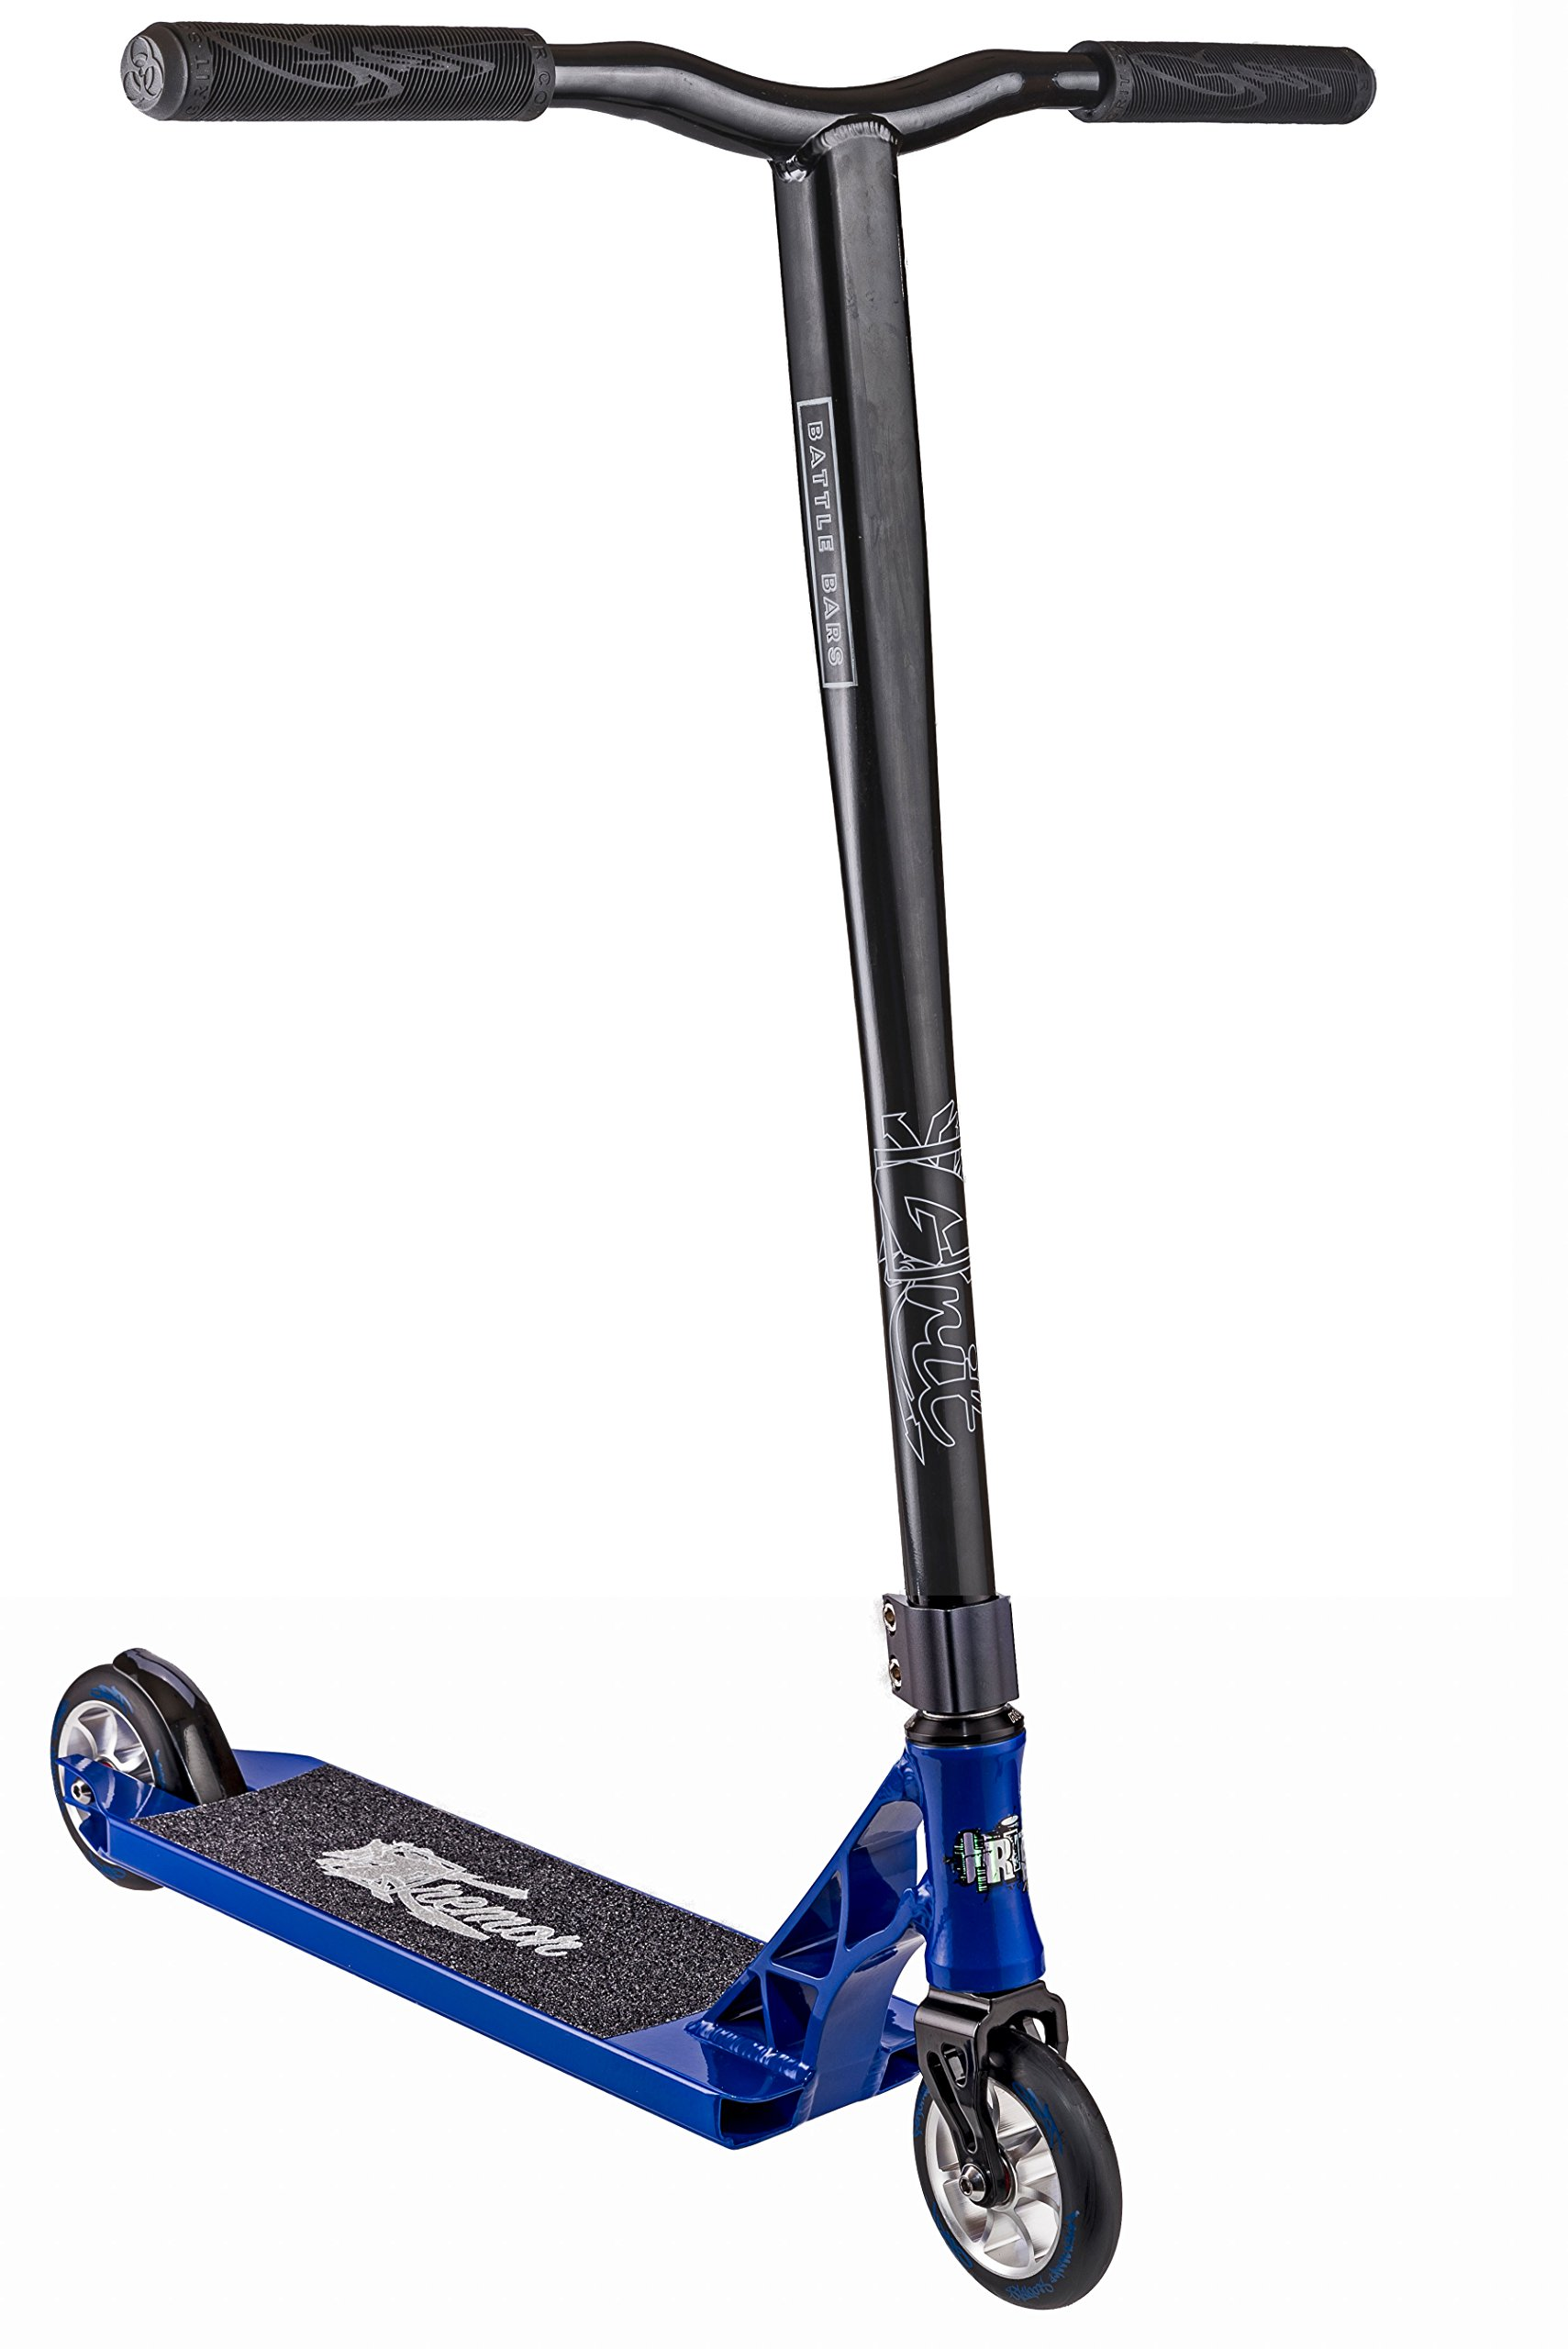 Grit Tremor Pro Scooter (Blue/Black Limited Edition)